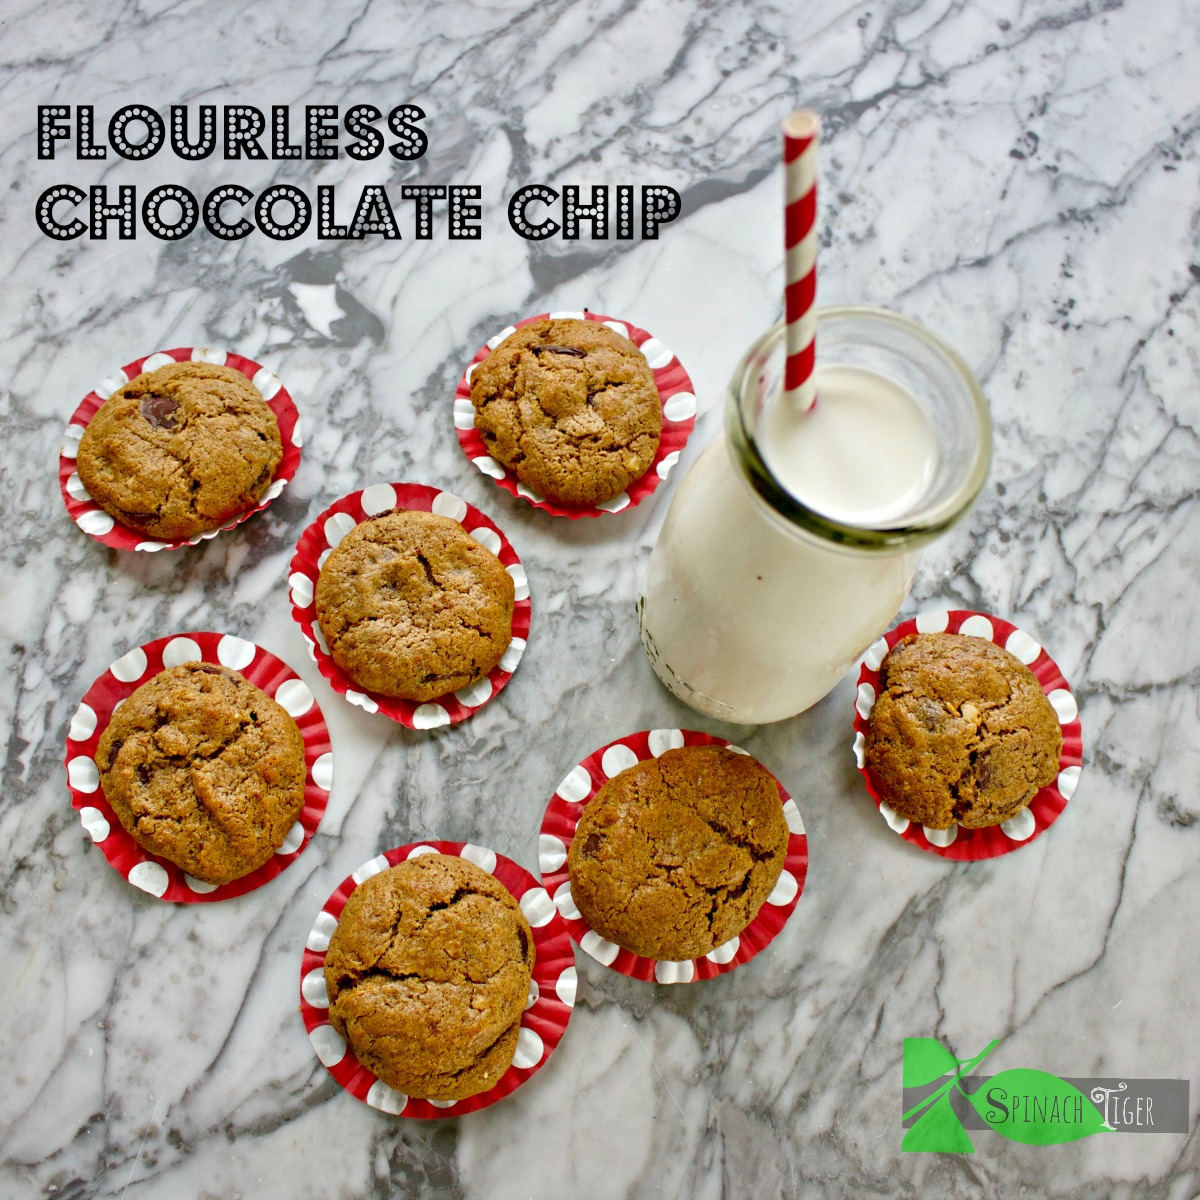 Easy Paleo Chocolate Chip Cookies with Almond Butter from Spinach Tiger